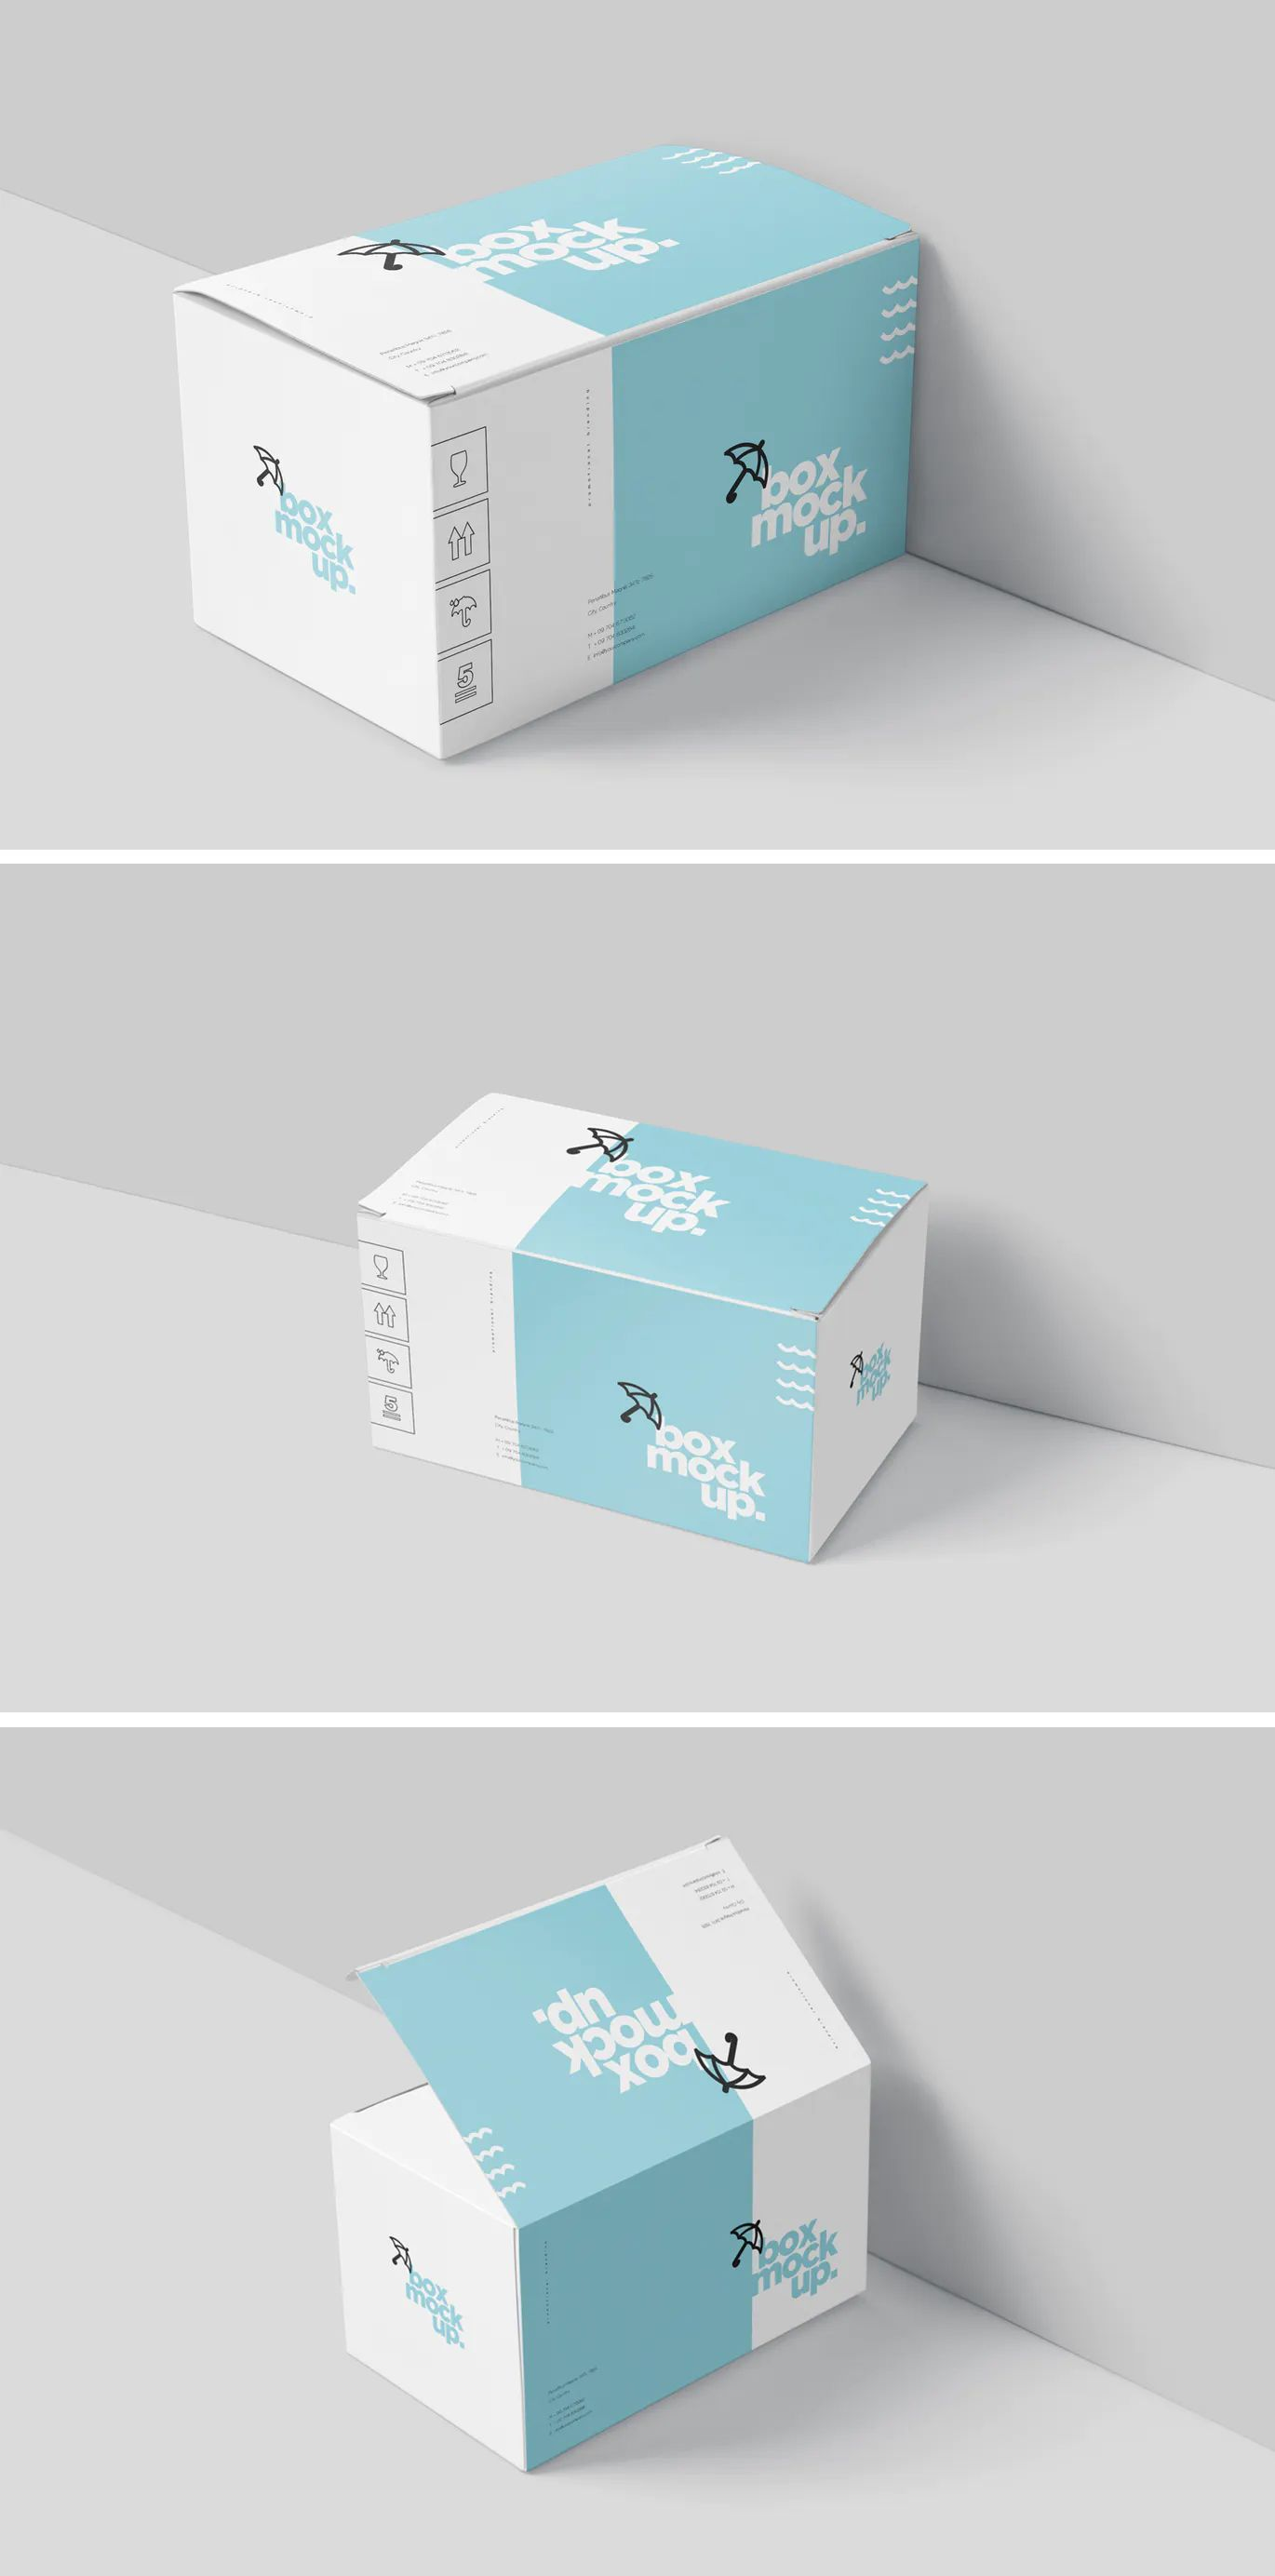 Download Box Mockup Set - Wide Rectangle Big Size in 2020 | Box ...